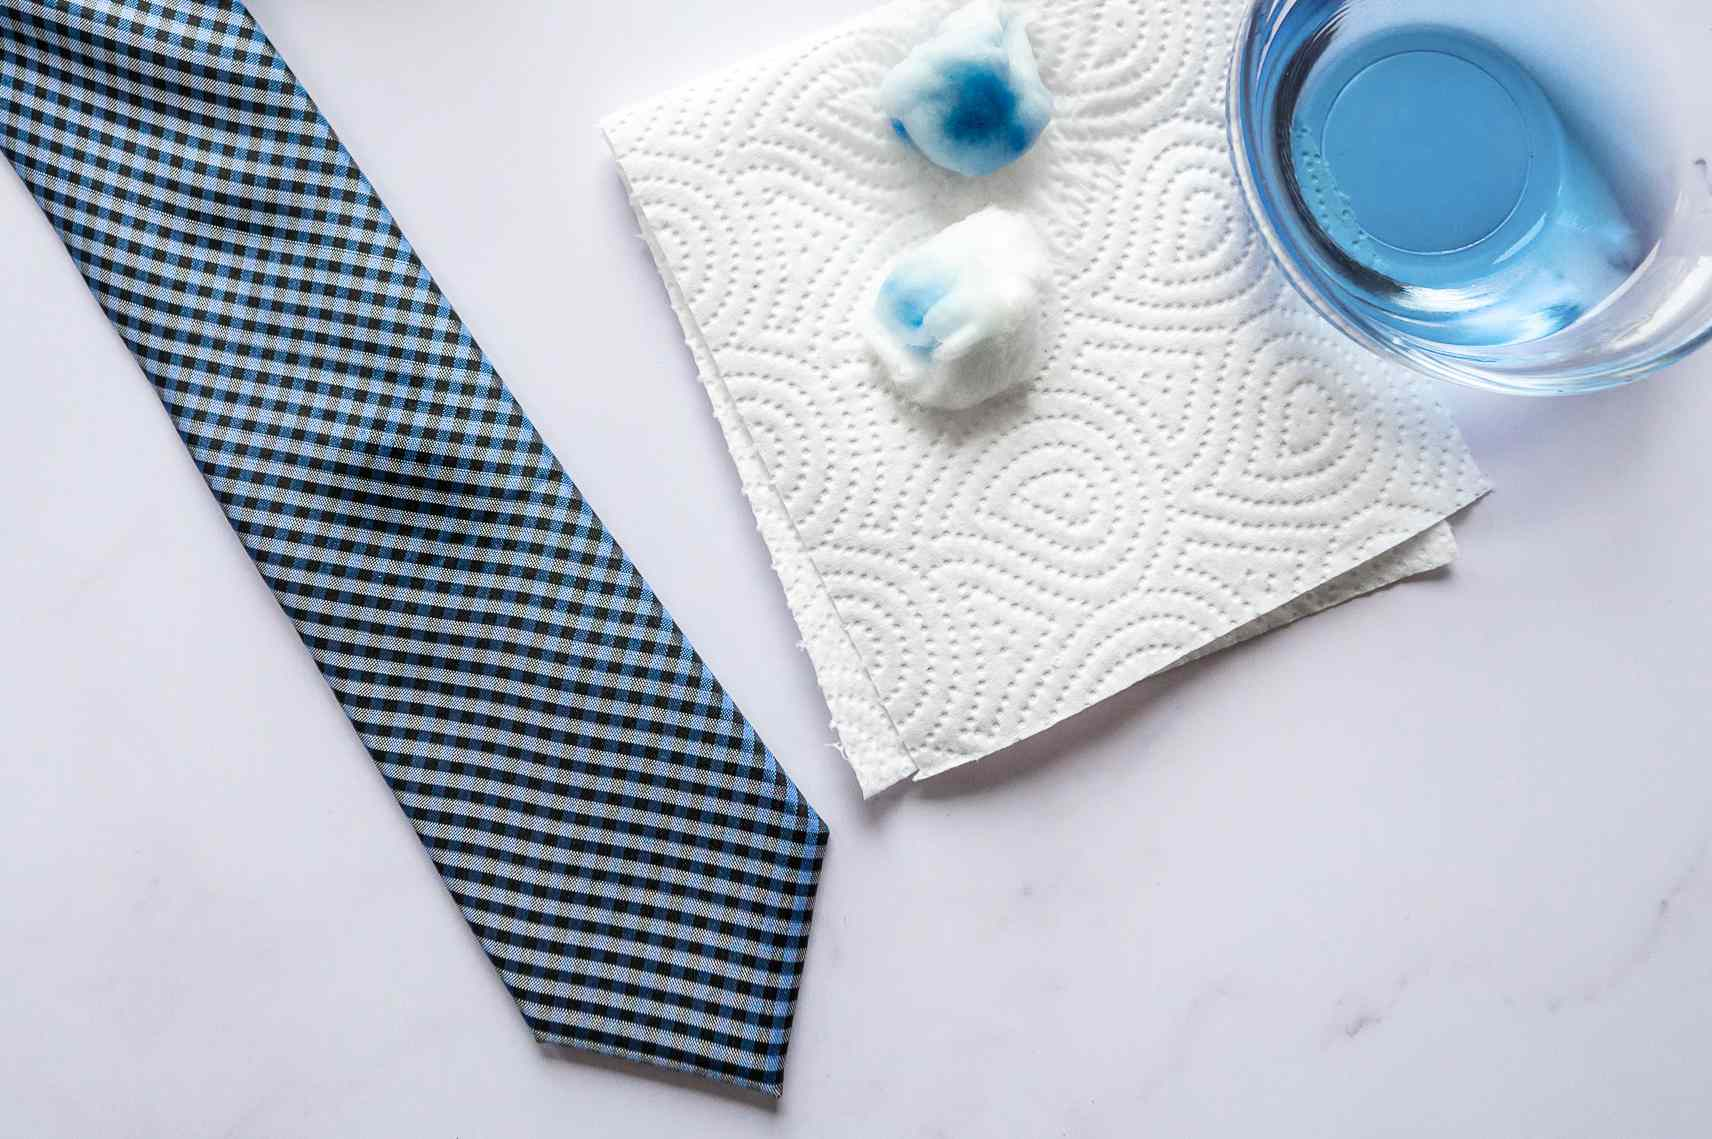 A tie, cotton balls, napkins, and a container of rubbing alcohol